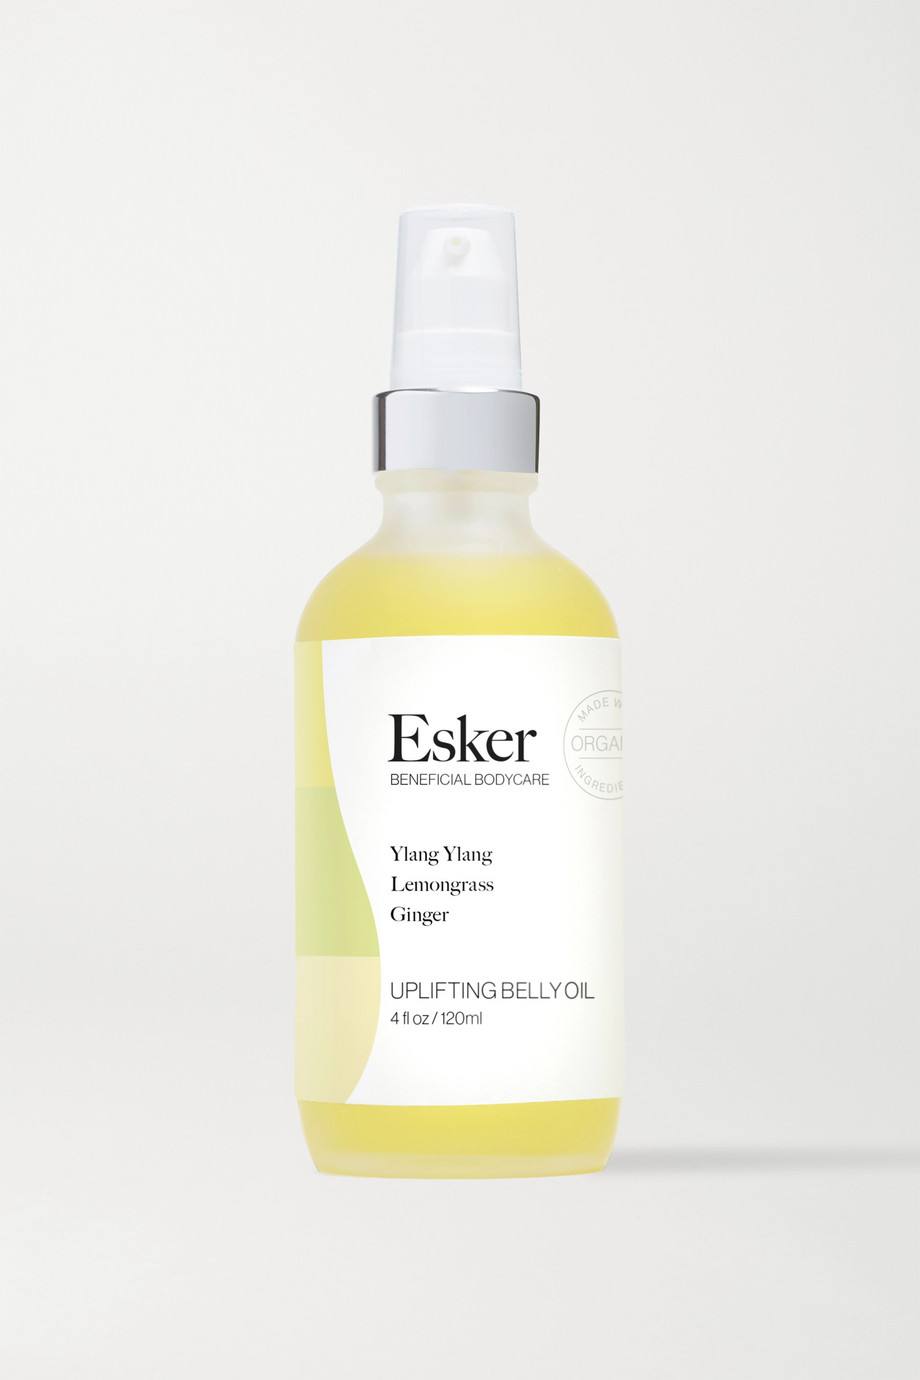 Esker Beauty Uplifting Belly Oil, 120ml